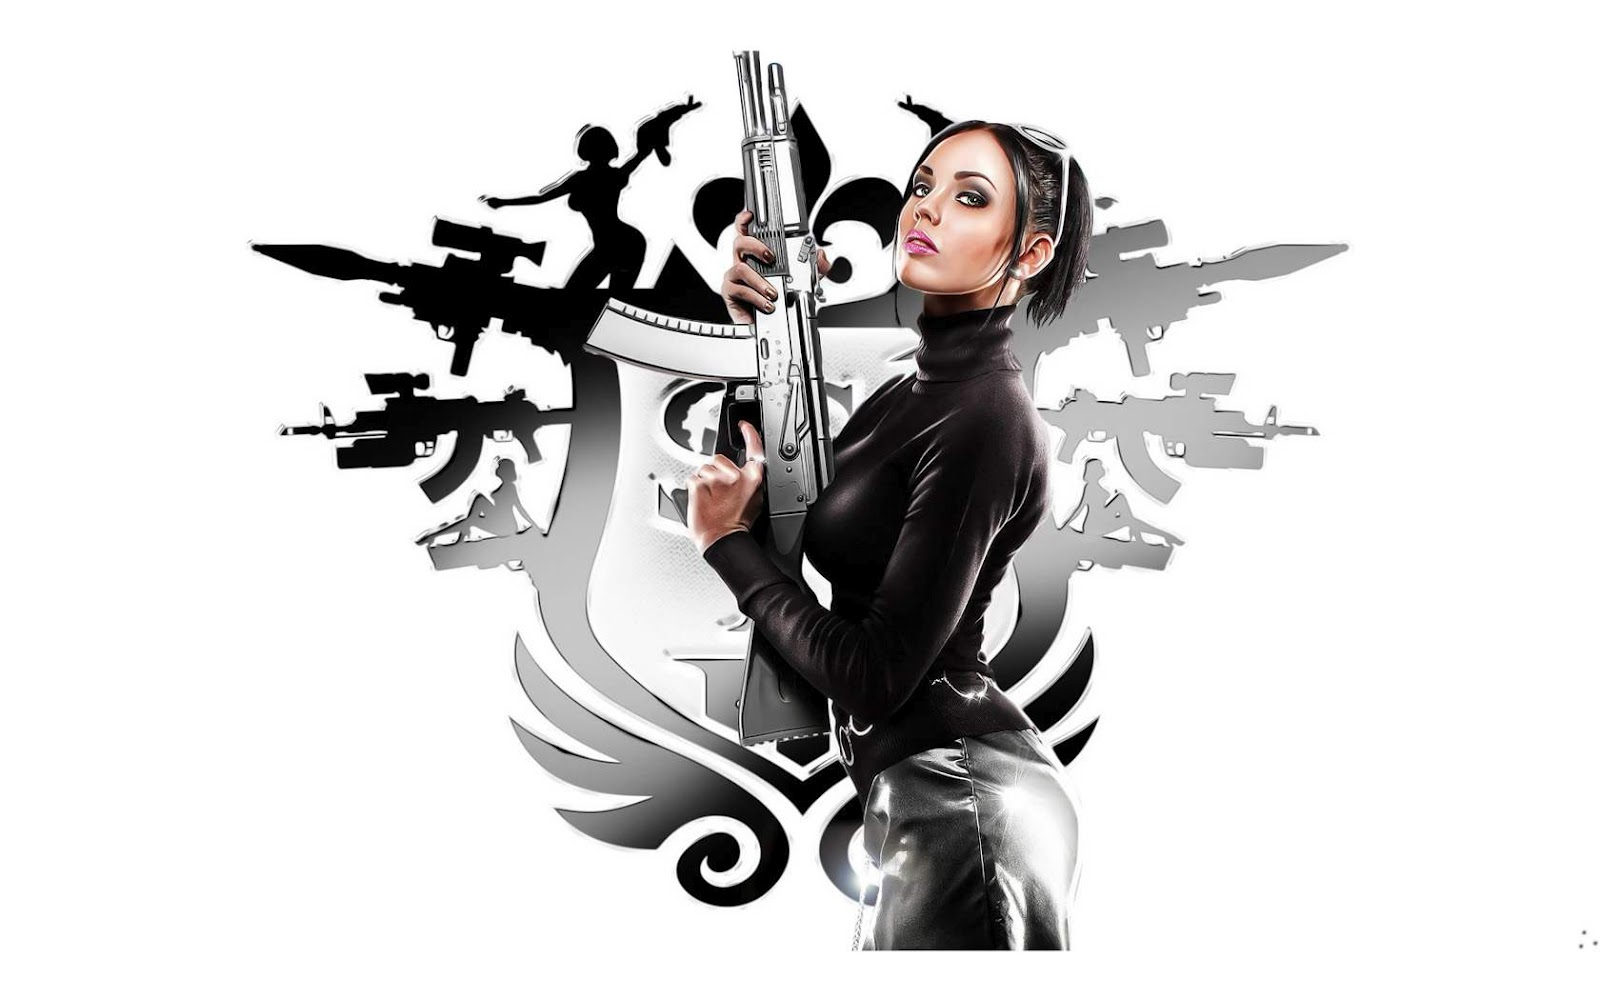 http://2.bp.blogspot.com/-wQ-zbwwN1hA/T4K4EeH3P1I/AAAAAAAABNw/tsVVBcPkePs/s1600/Saint_Row_a_Viola_DeWynter_with_AK-47_HD_Video_Game_Wallpaper-gWb.jpg